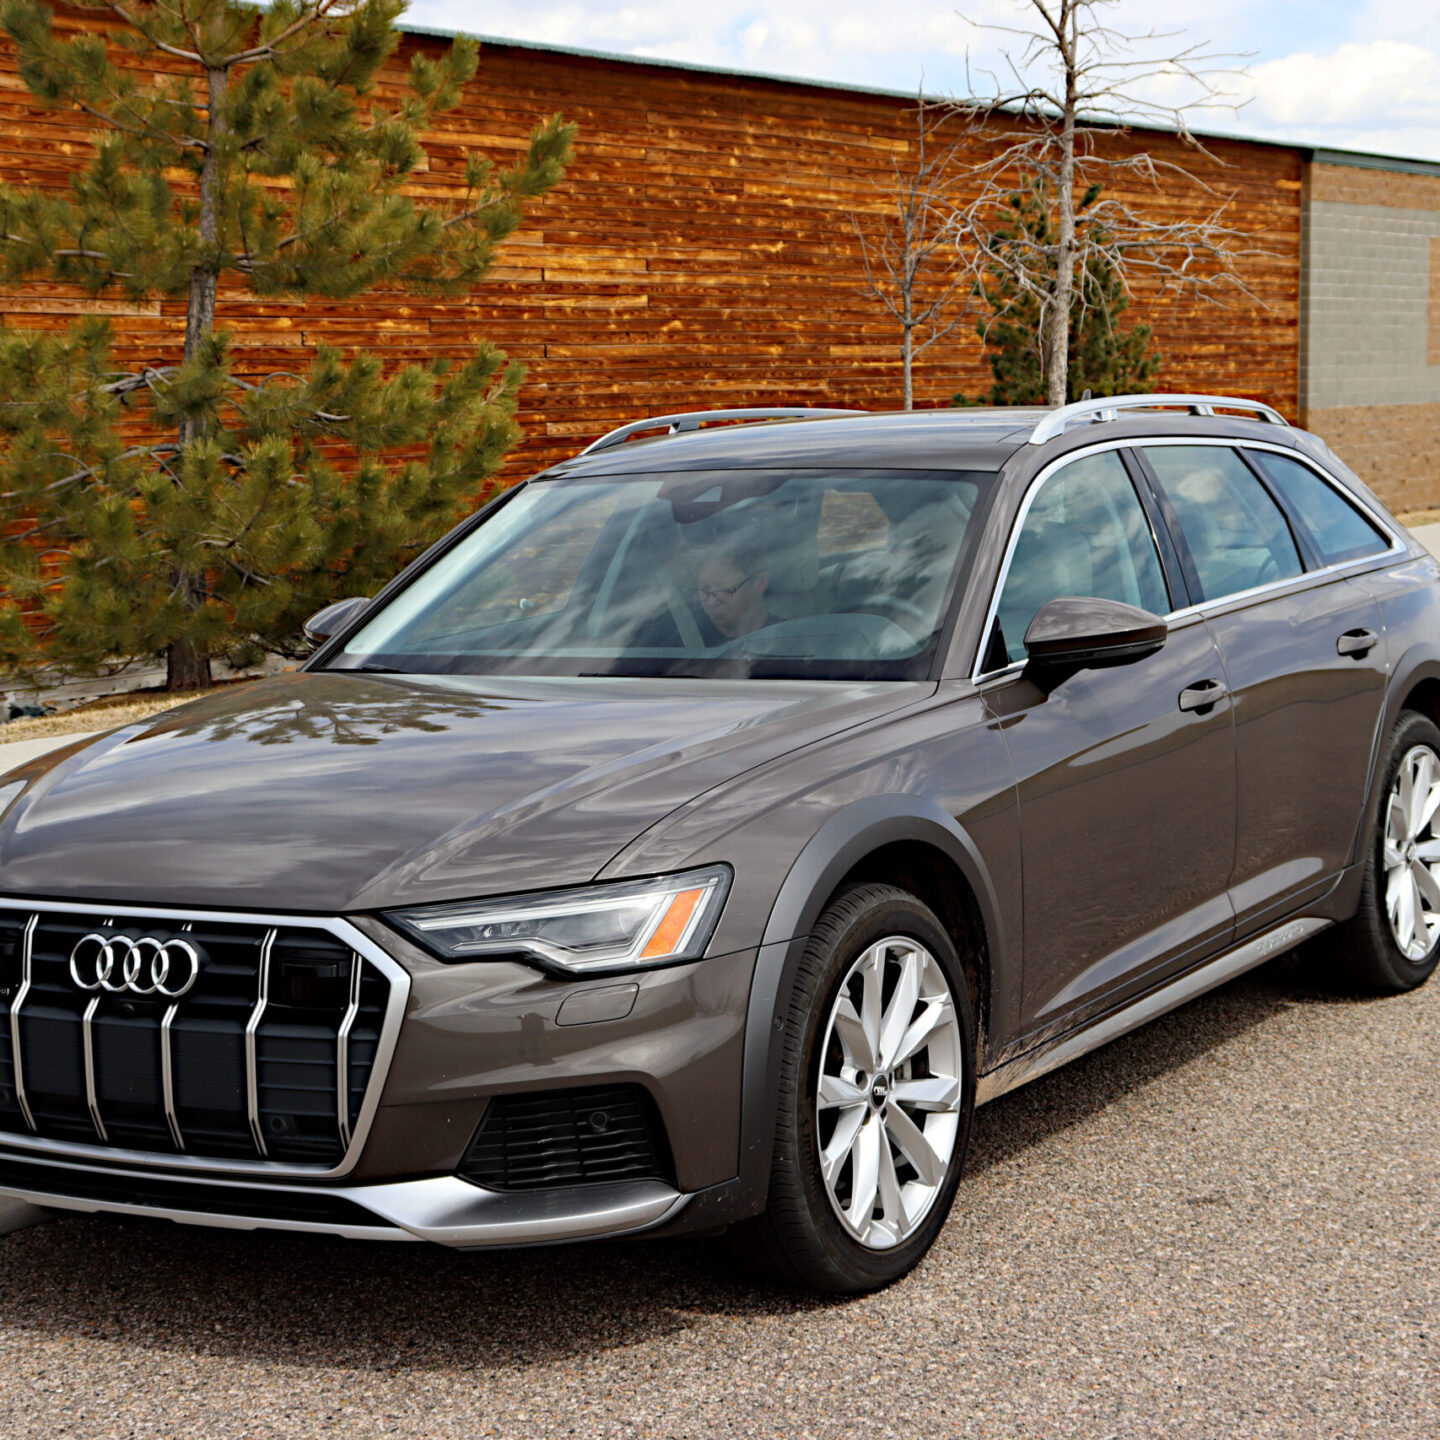 2021 Audi A6 Allroad – For Love of Wagonkind